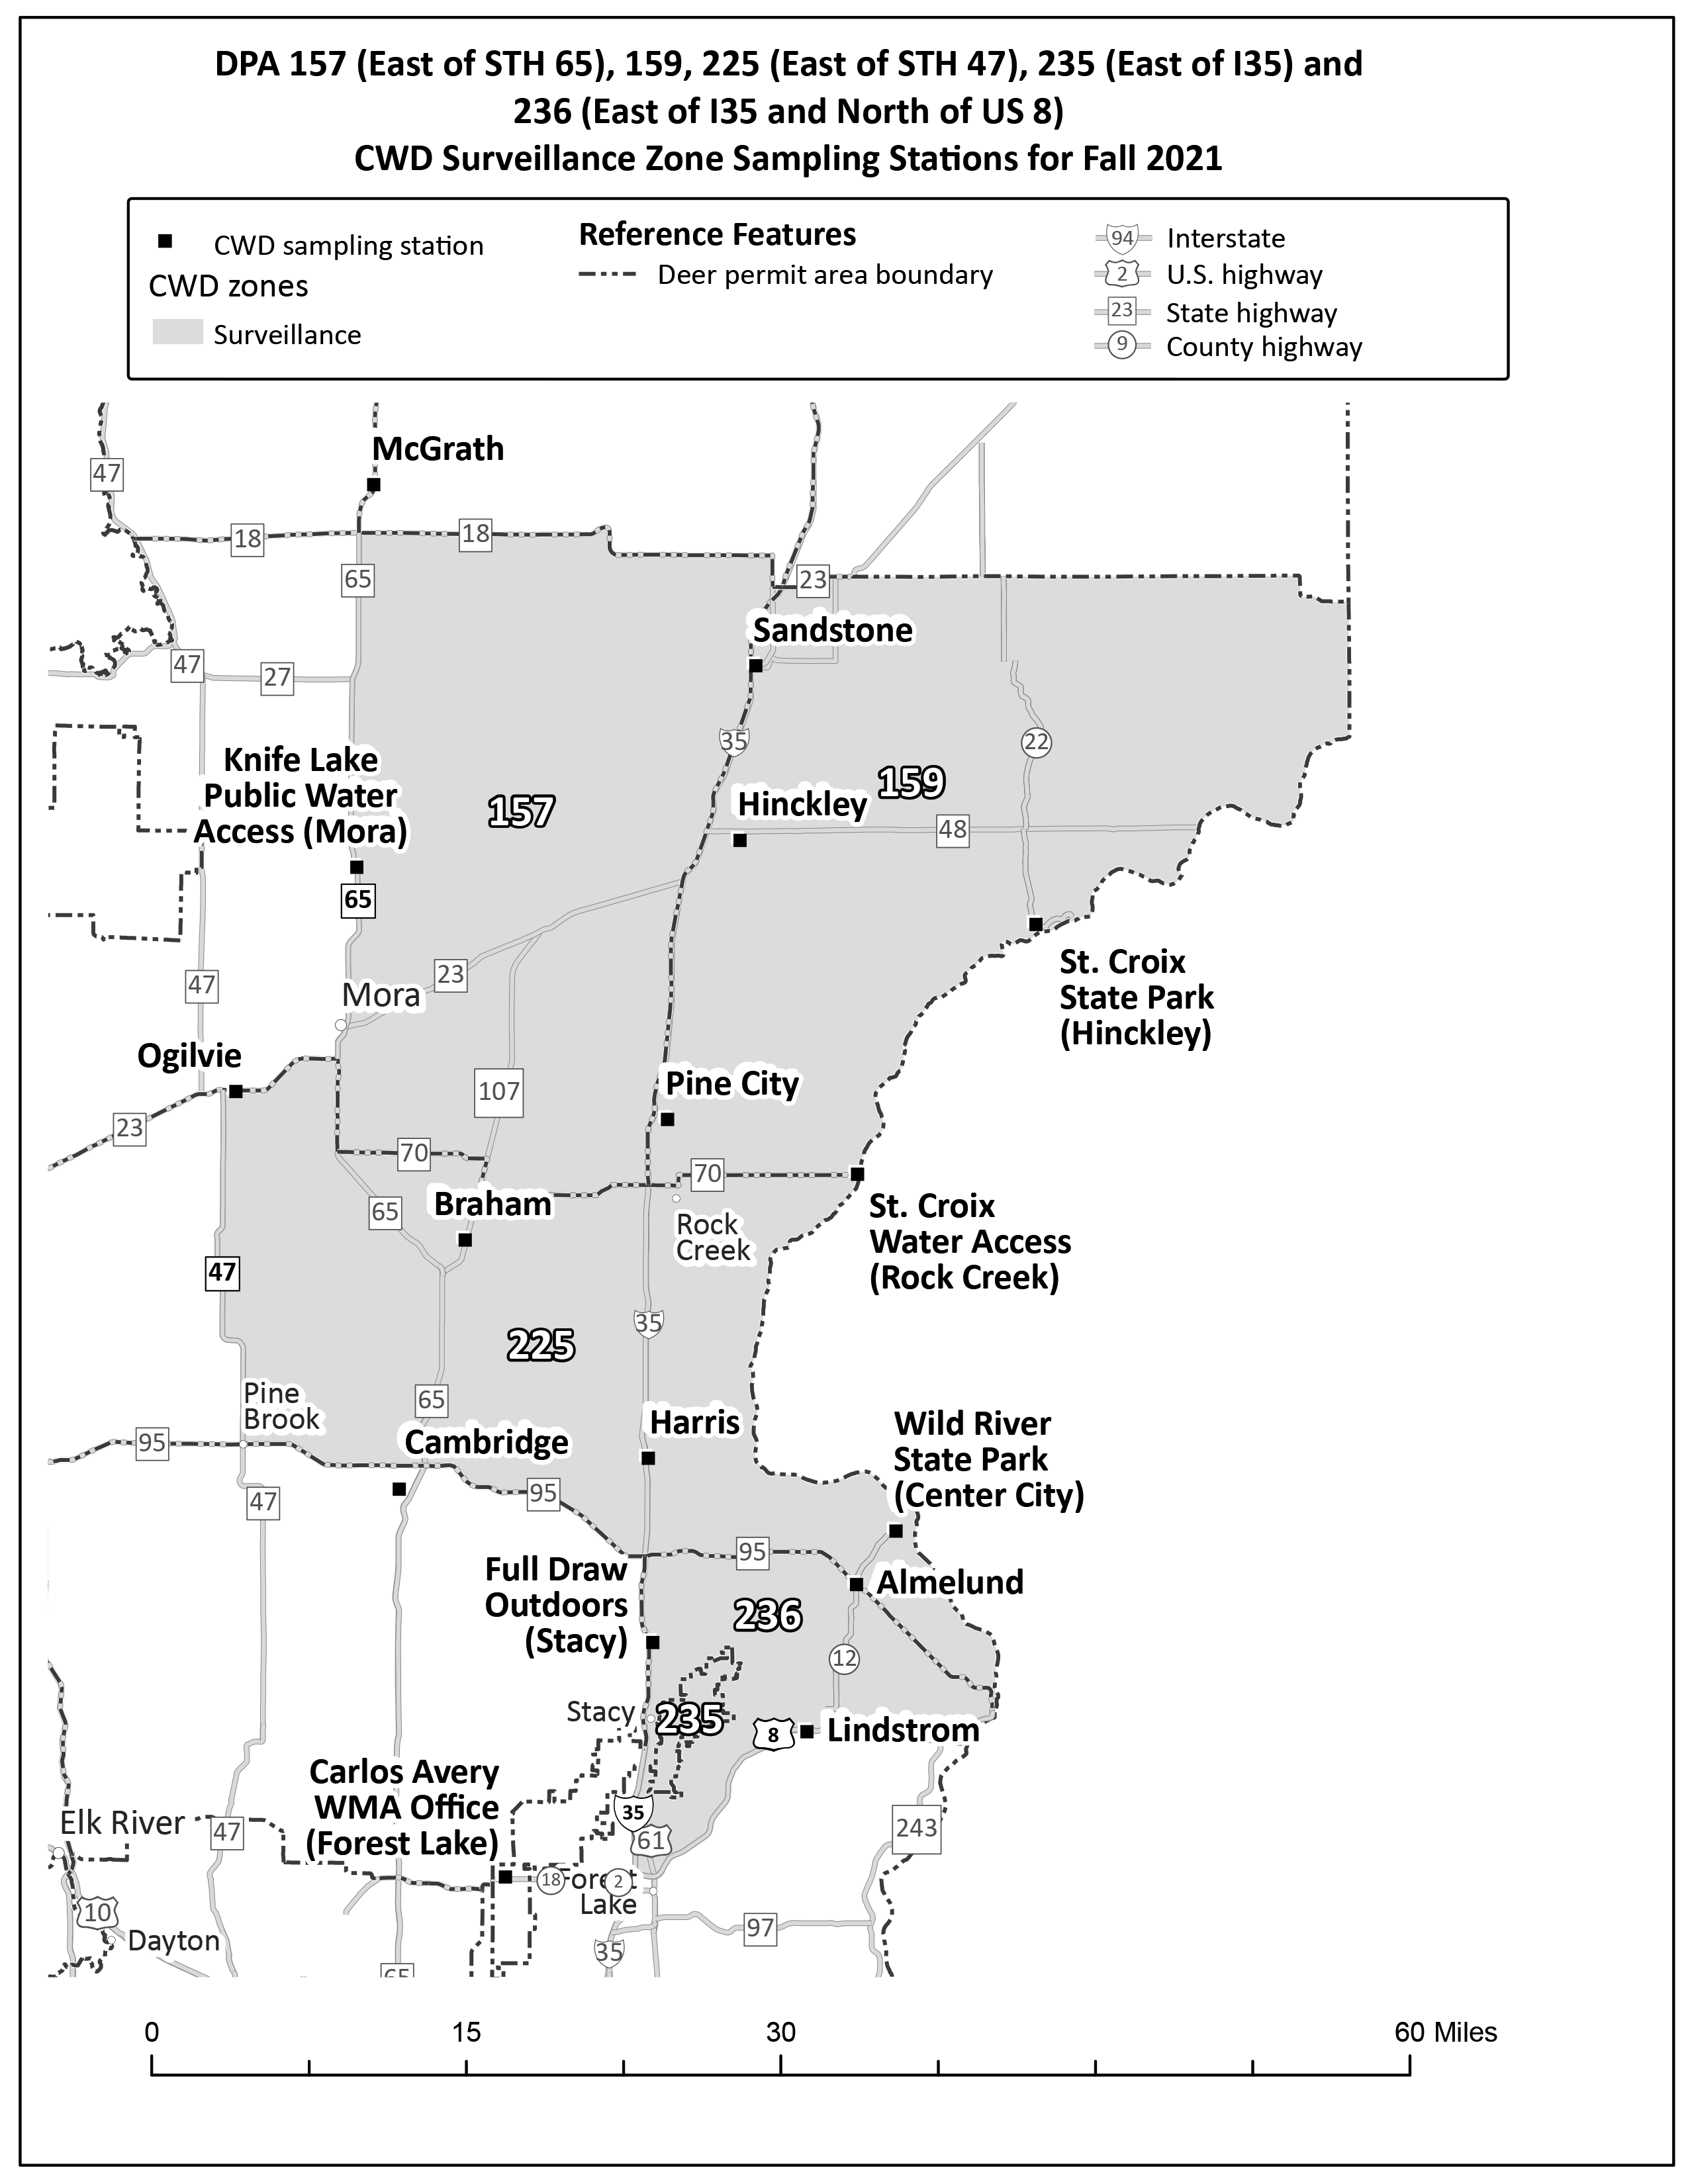 Map showing one section of the DPAs included in the CWD surveillance zone (with * denoting a portion of the DPA: DPAs 157*, 159, 225*, 235*, 236*) and the sampling stations.